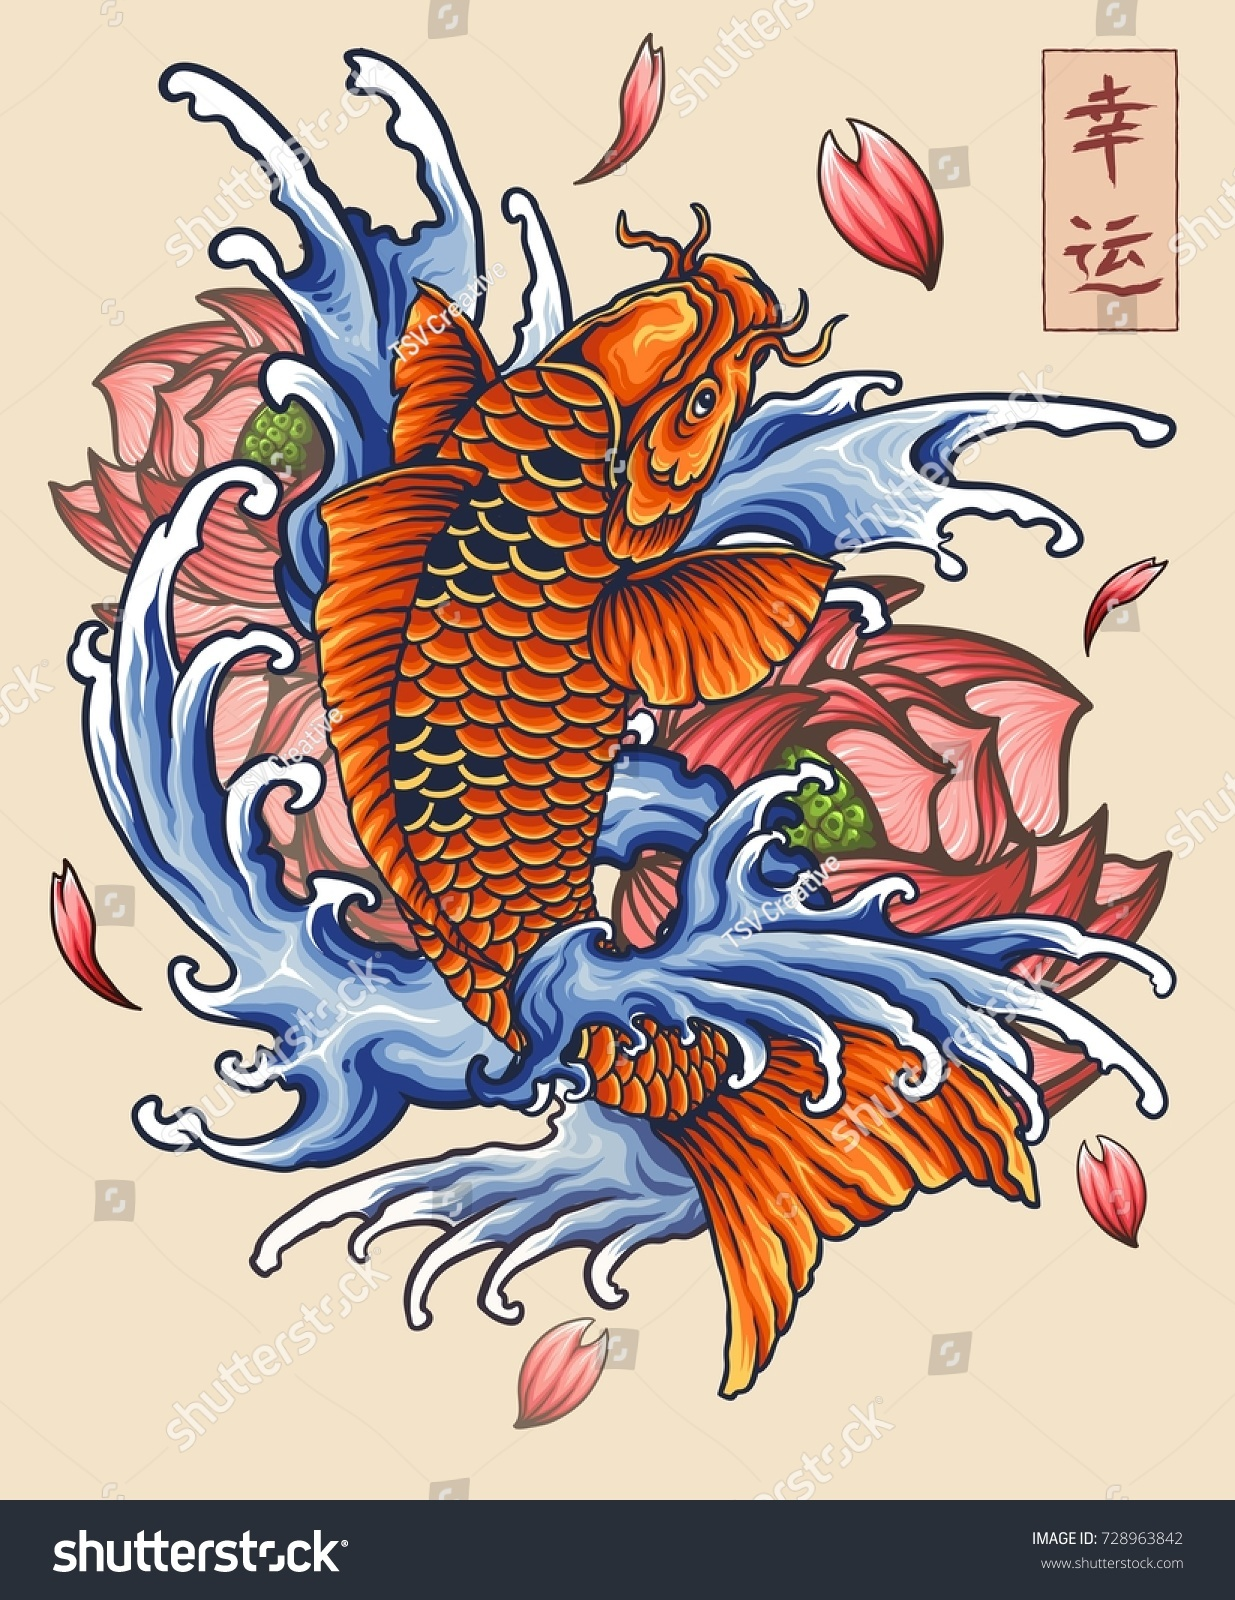 Vector Illustration Japanese Koi Fish Tattoo Stock Vector Royalty Free 728963842